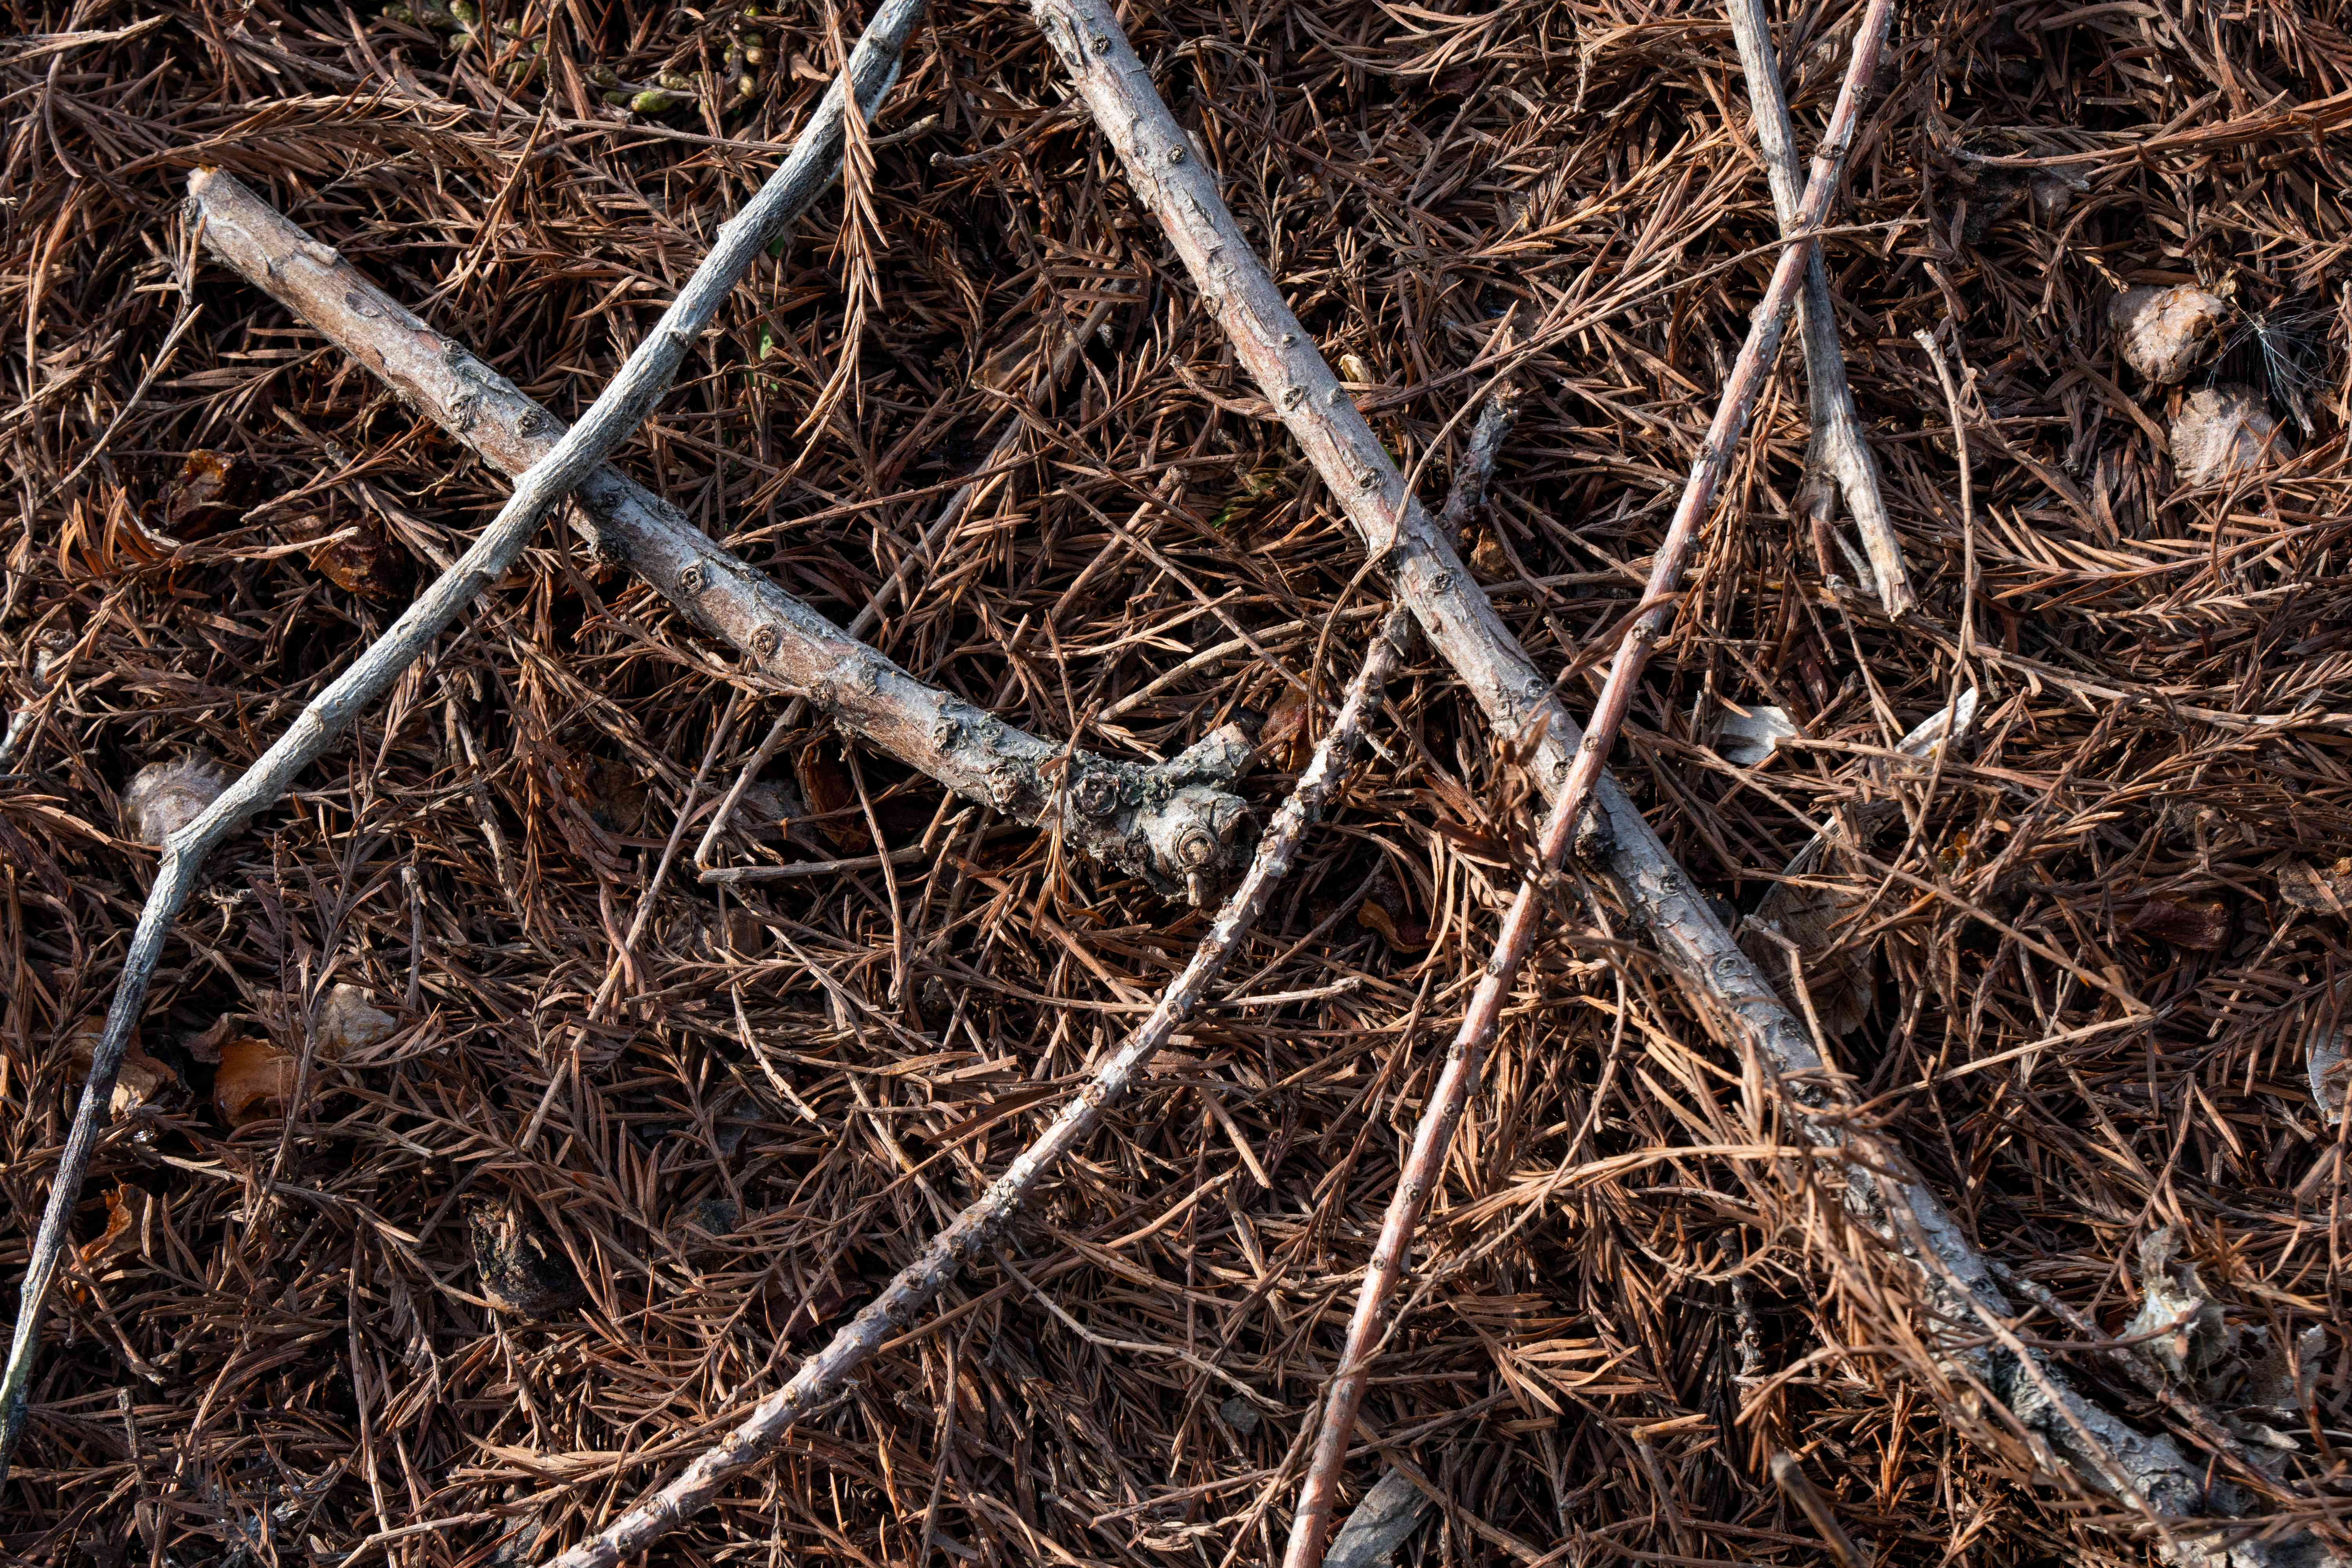 closeup shot of tree twigs on ground surrounded by brown pine needles